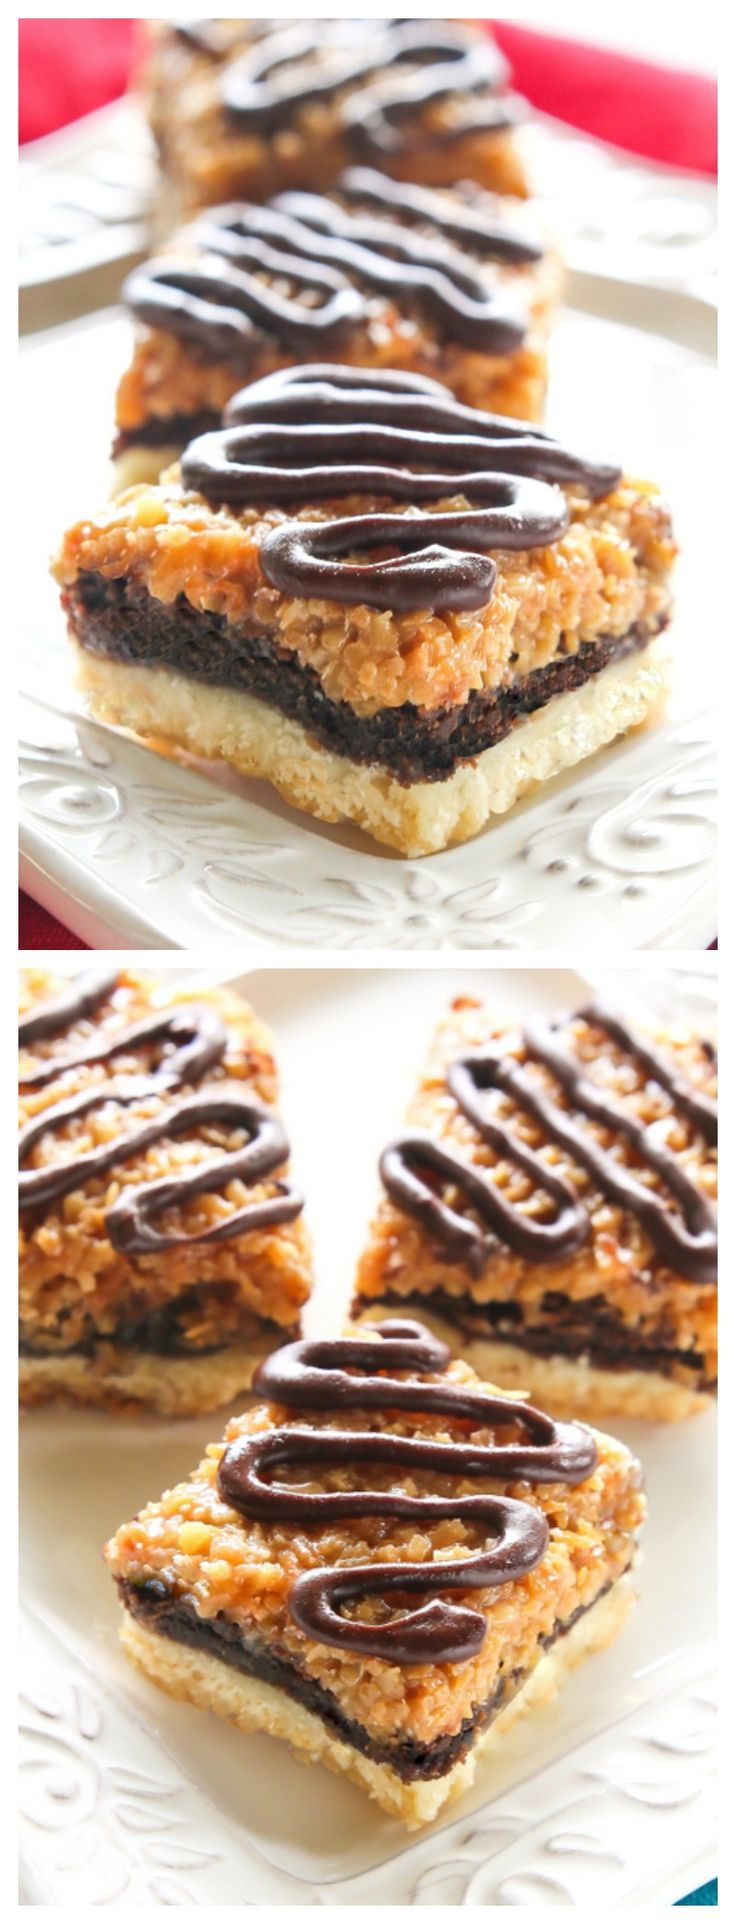 These Samoa Brownie Bars have a shortbread crust topped with a brownie layer and caramel coconut